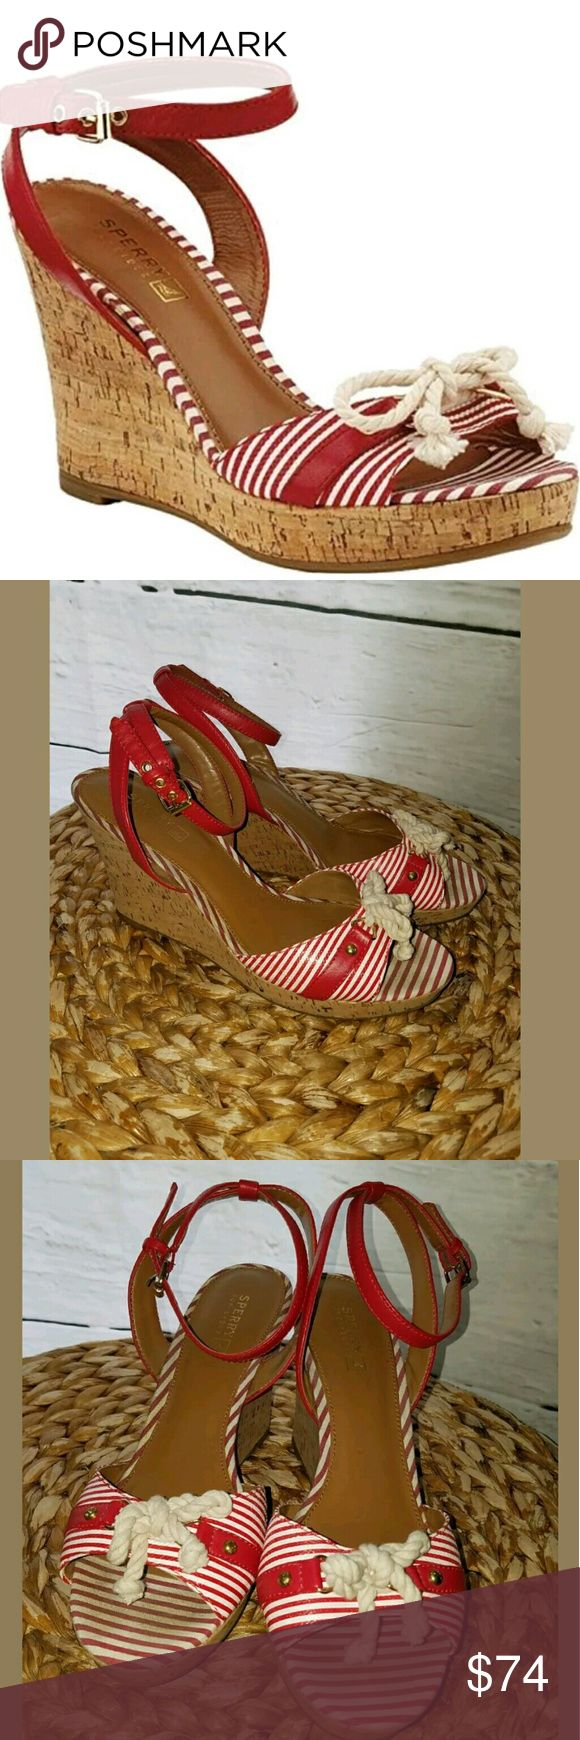 Sperry Top-Sider Portsea Platform Wedge Shoes Sperry Top-Sider Portsea Platform Wedge Striped Rope Heels Red White 9.5  Excellent used condition. Very Lightly worn.  LB Sperry Top-Sider Shoes Wedges